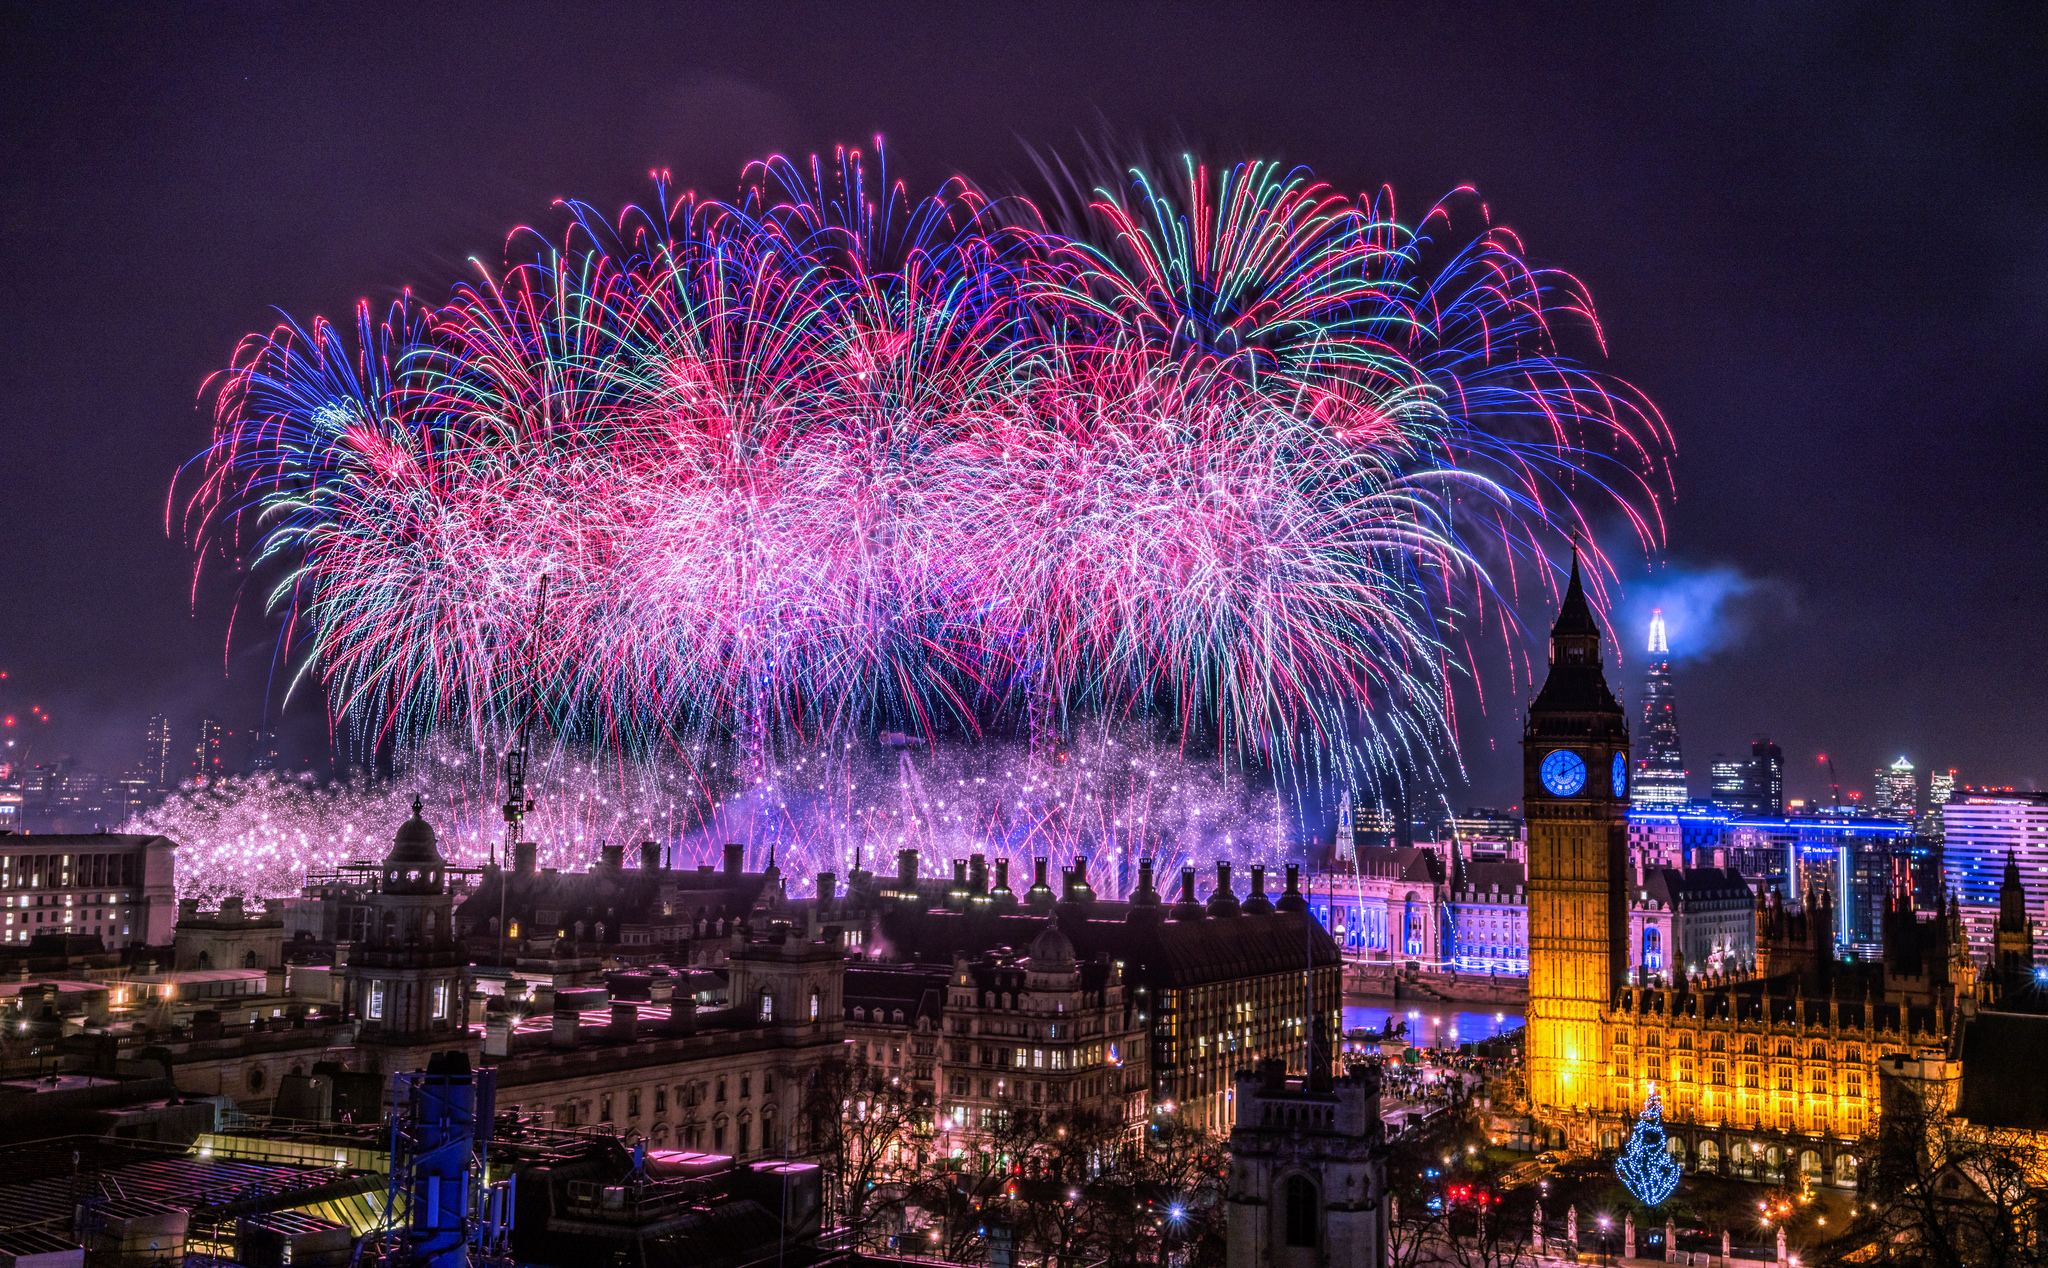 New Year's Eve And No Plans Here's What You Need to Know 7 New Year's Eve New Year's Eve And No Plans? Here's What You Need to Know New Years Eve And No Plans Heres What You Need to Know 7